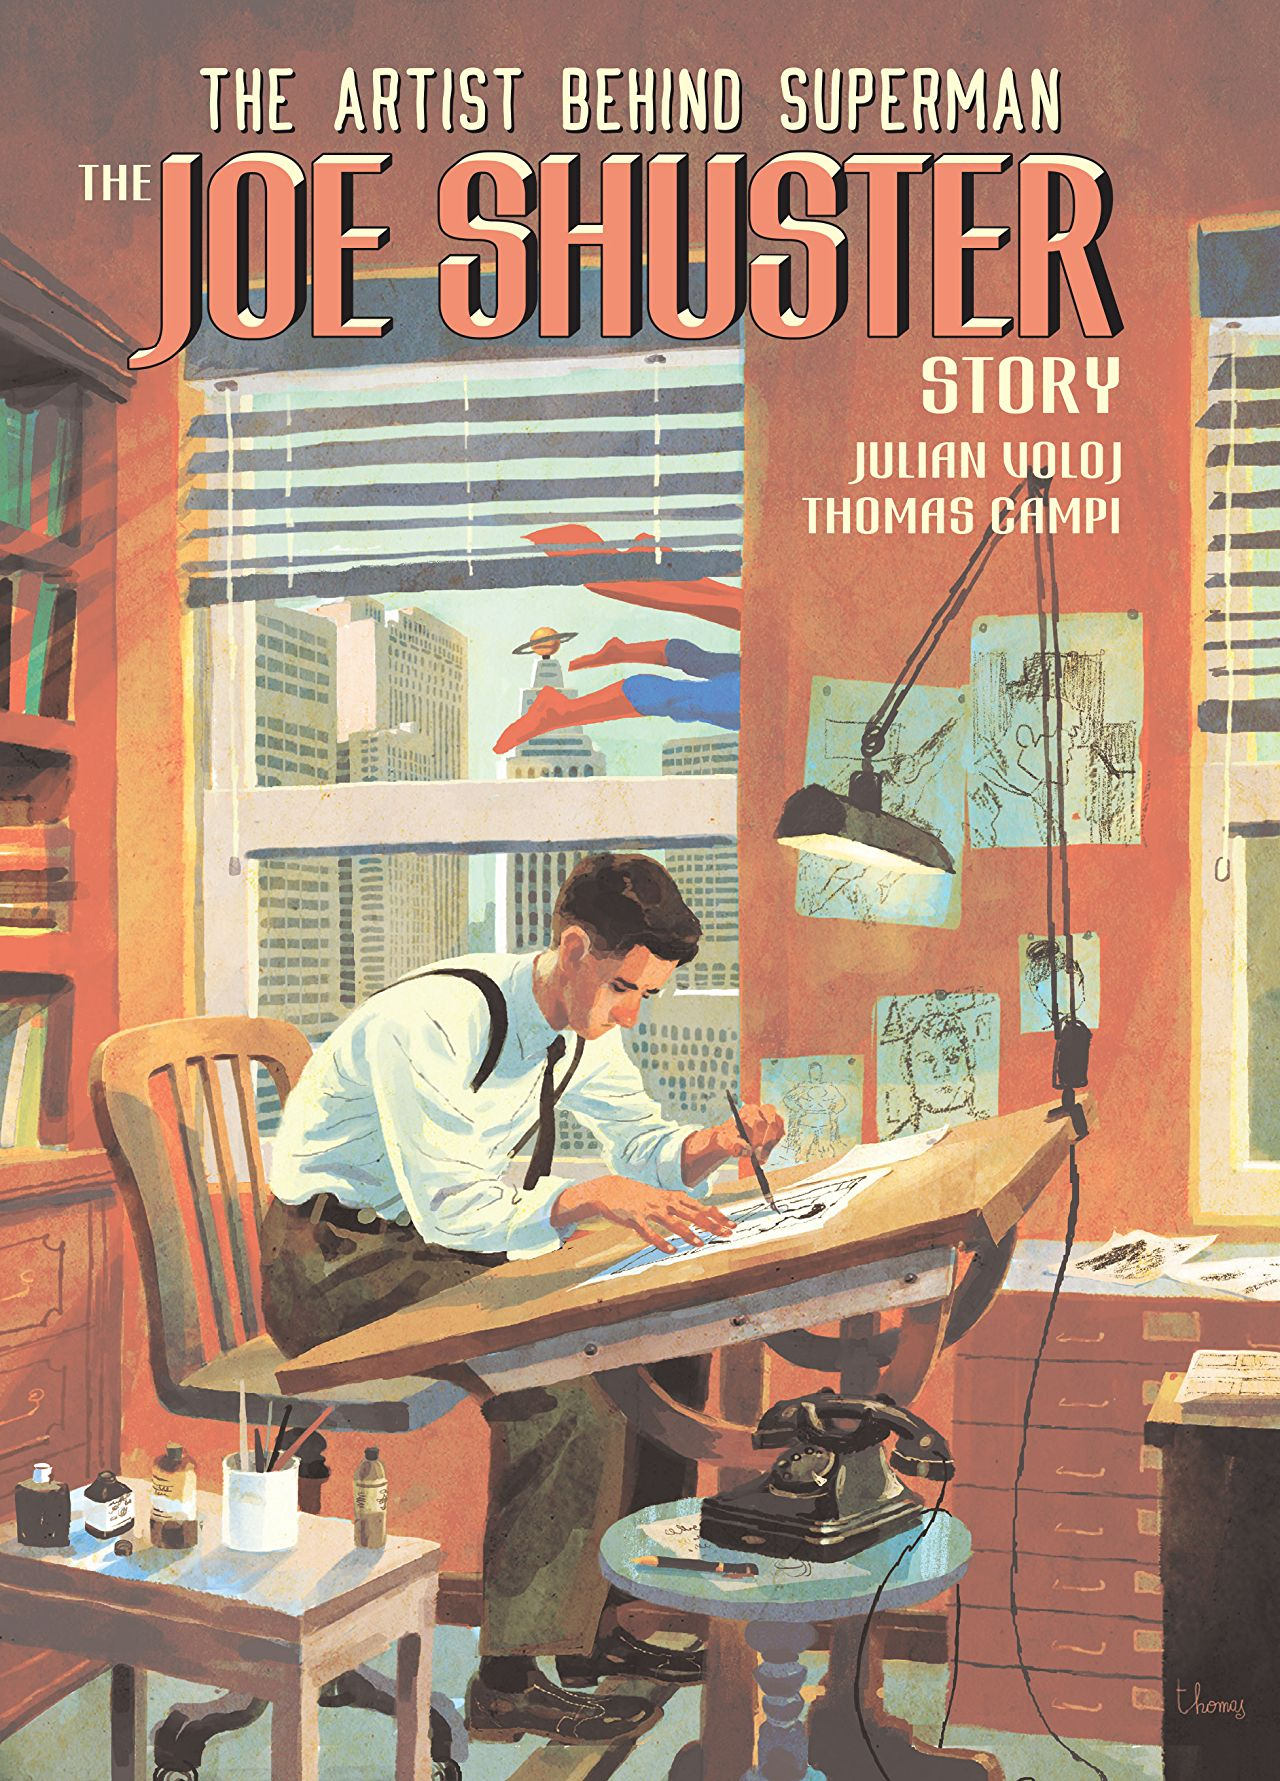 The Artist Behind Superman: The Joe Shuster Story